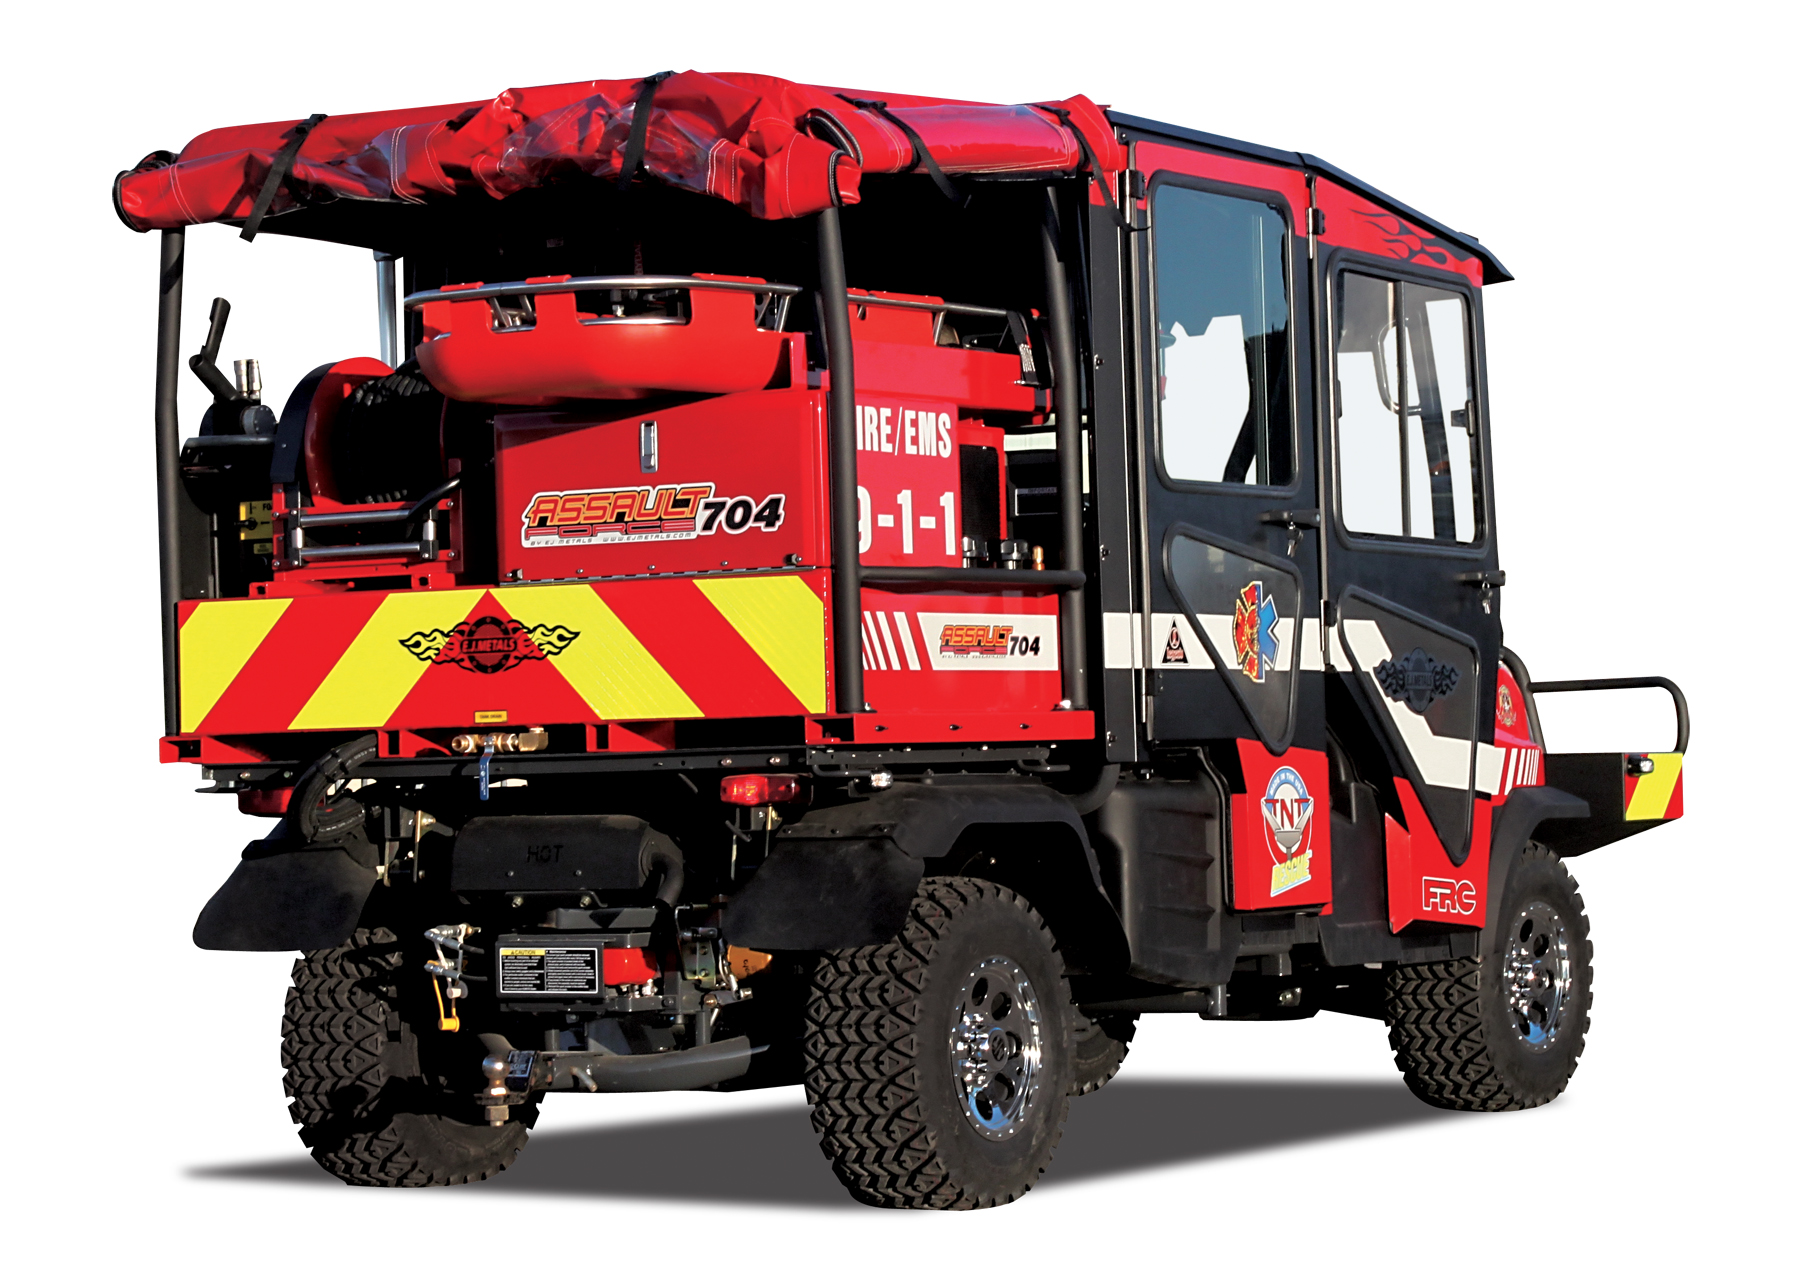 E J Metals Introduces New Assault Force 70 4 Fire Rescue